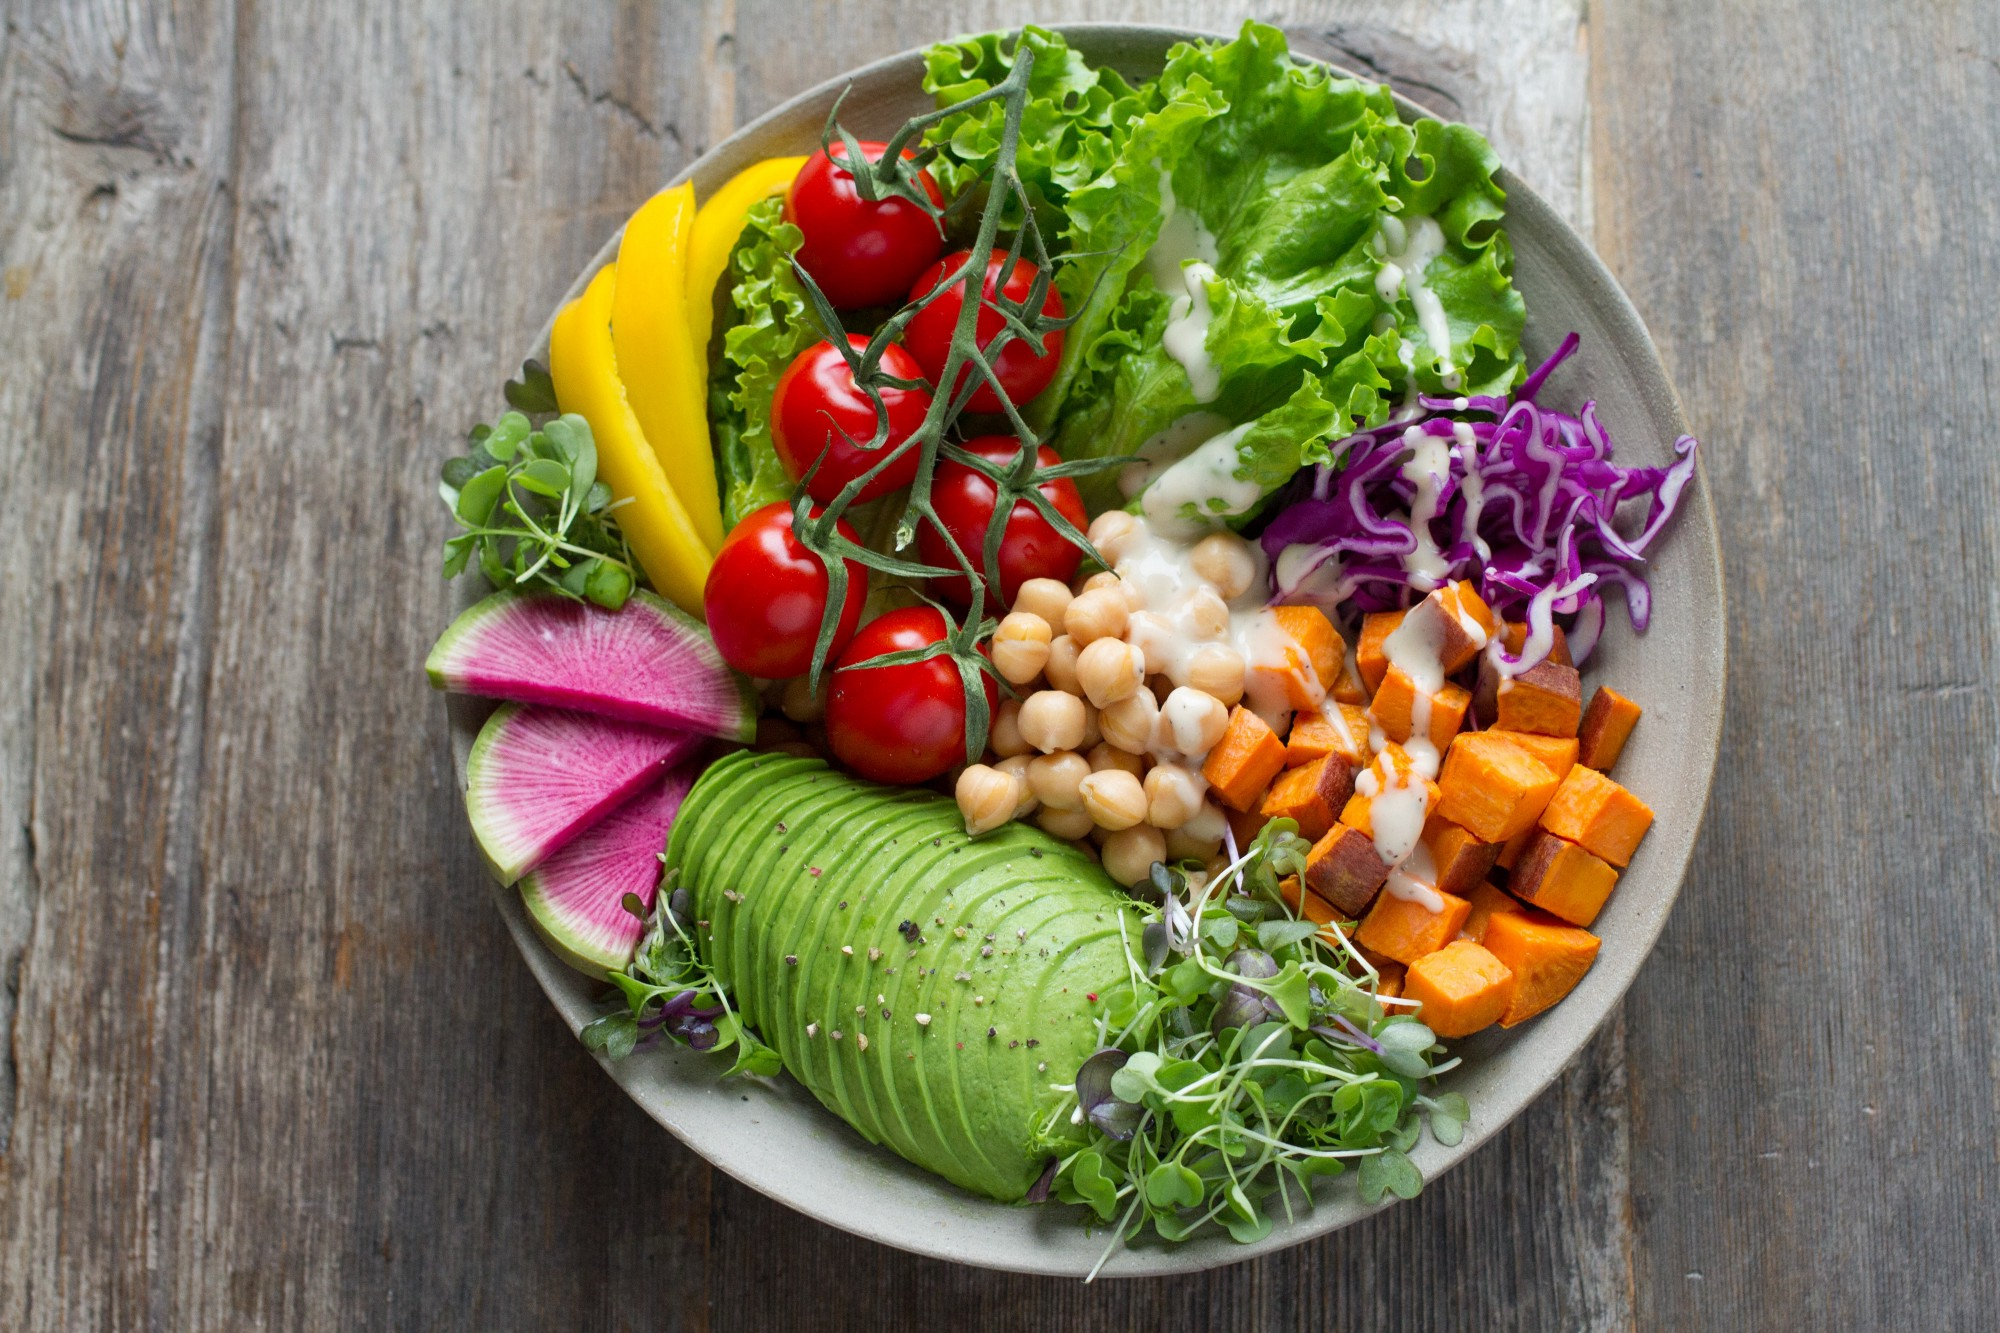 An image of a plant-based bowl